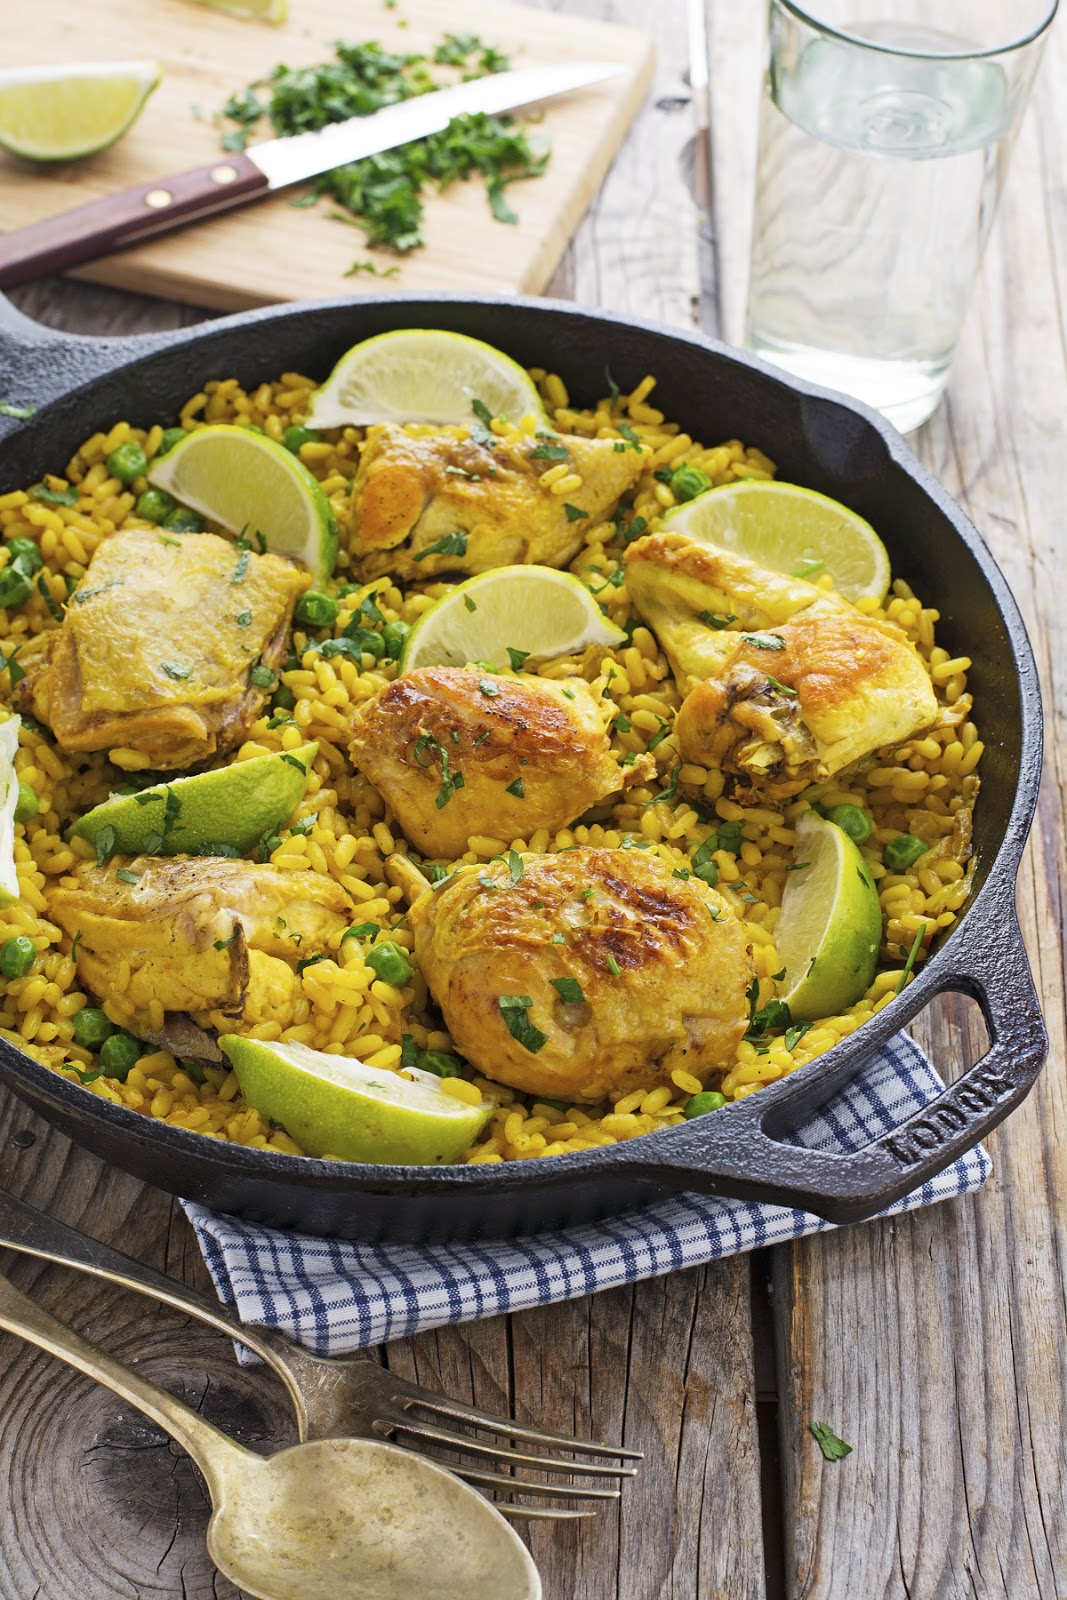 Easy One-Pot Turmeric Chicken and Rice